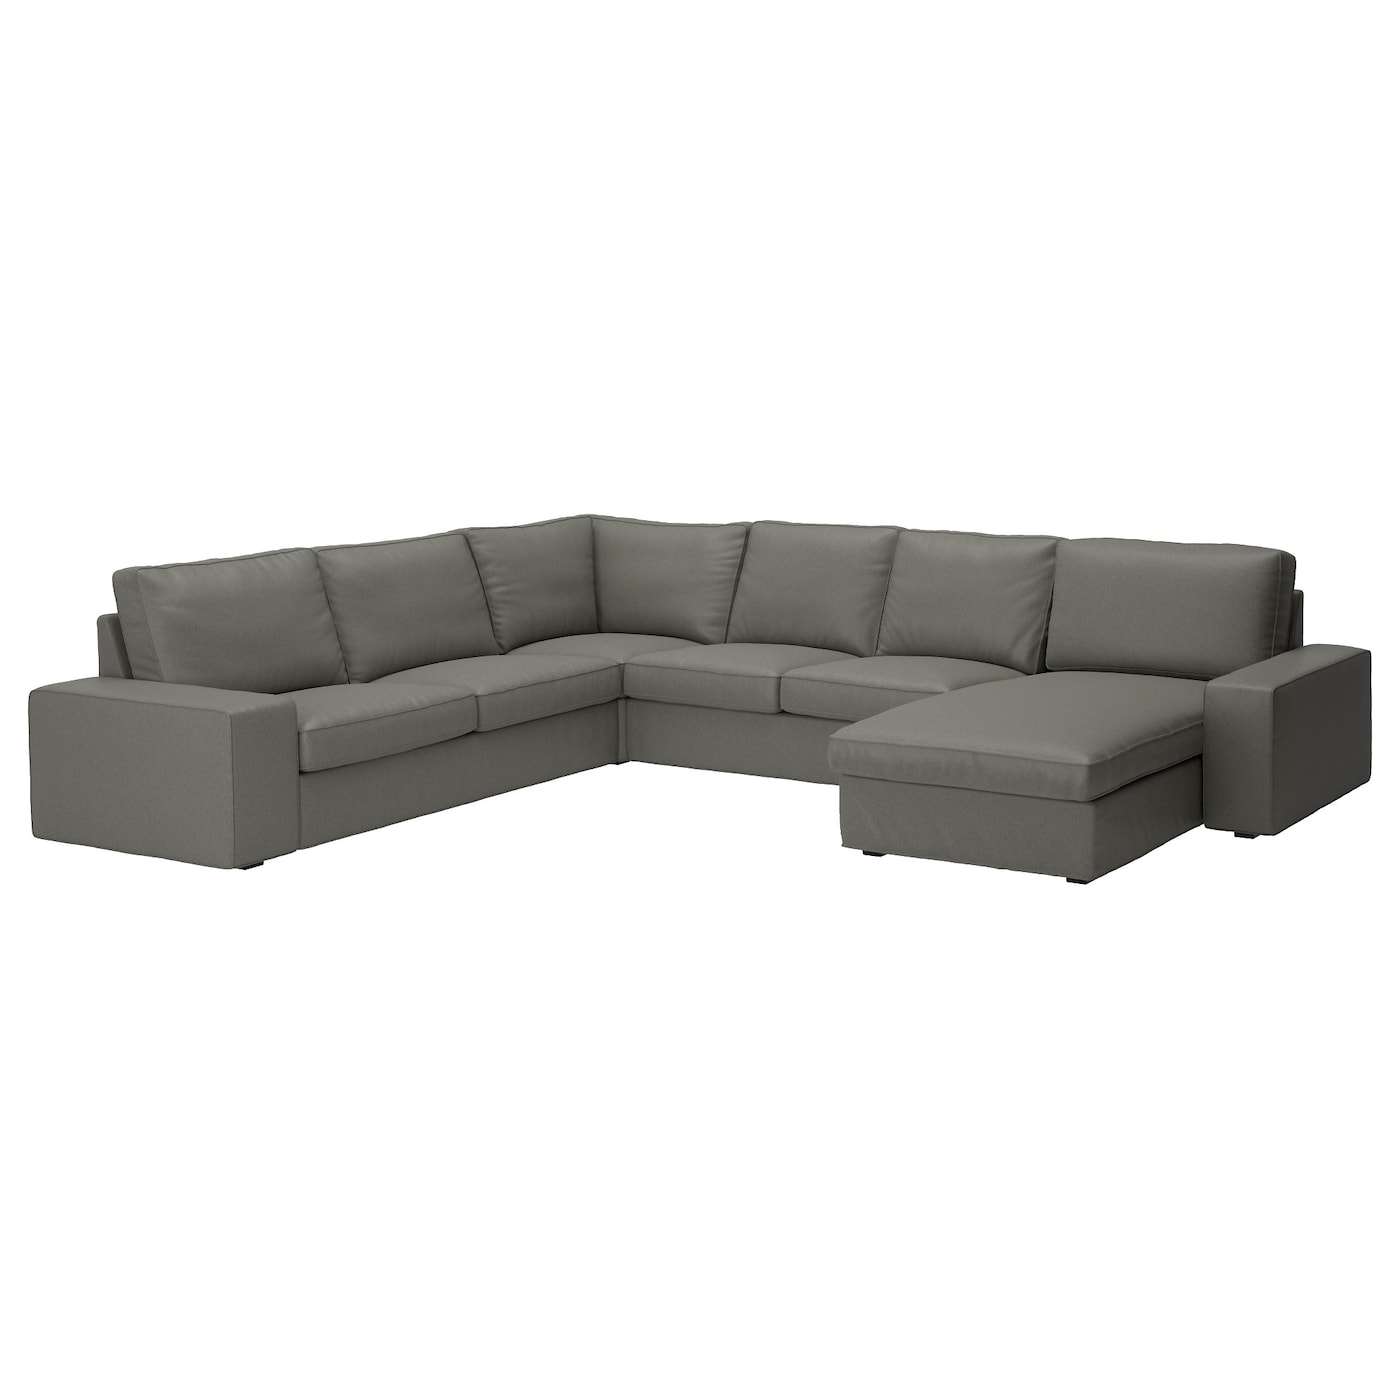 kivik corner sofa 2 2 with chaise longue borred grey green ikea. Black Bedroom Furniture Sets. Home Design Ideas